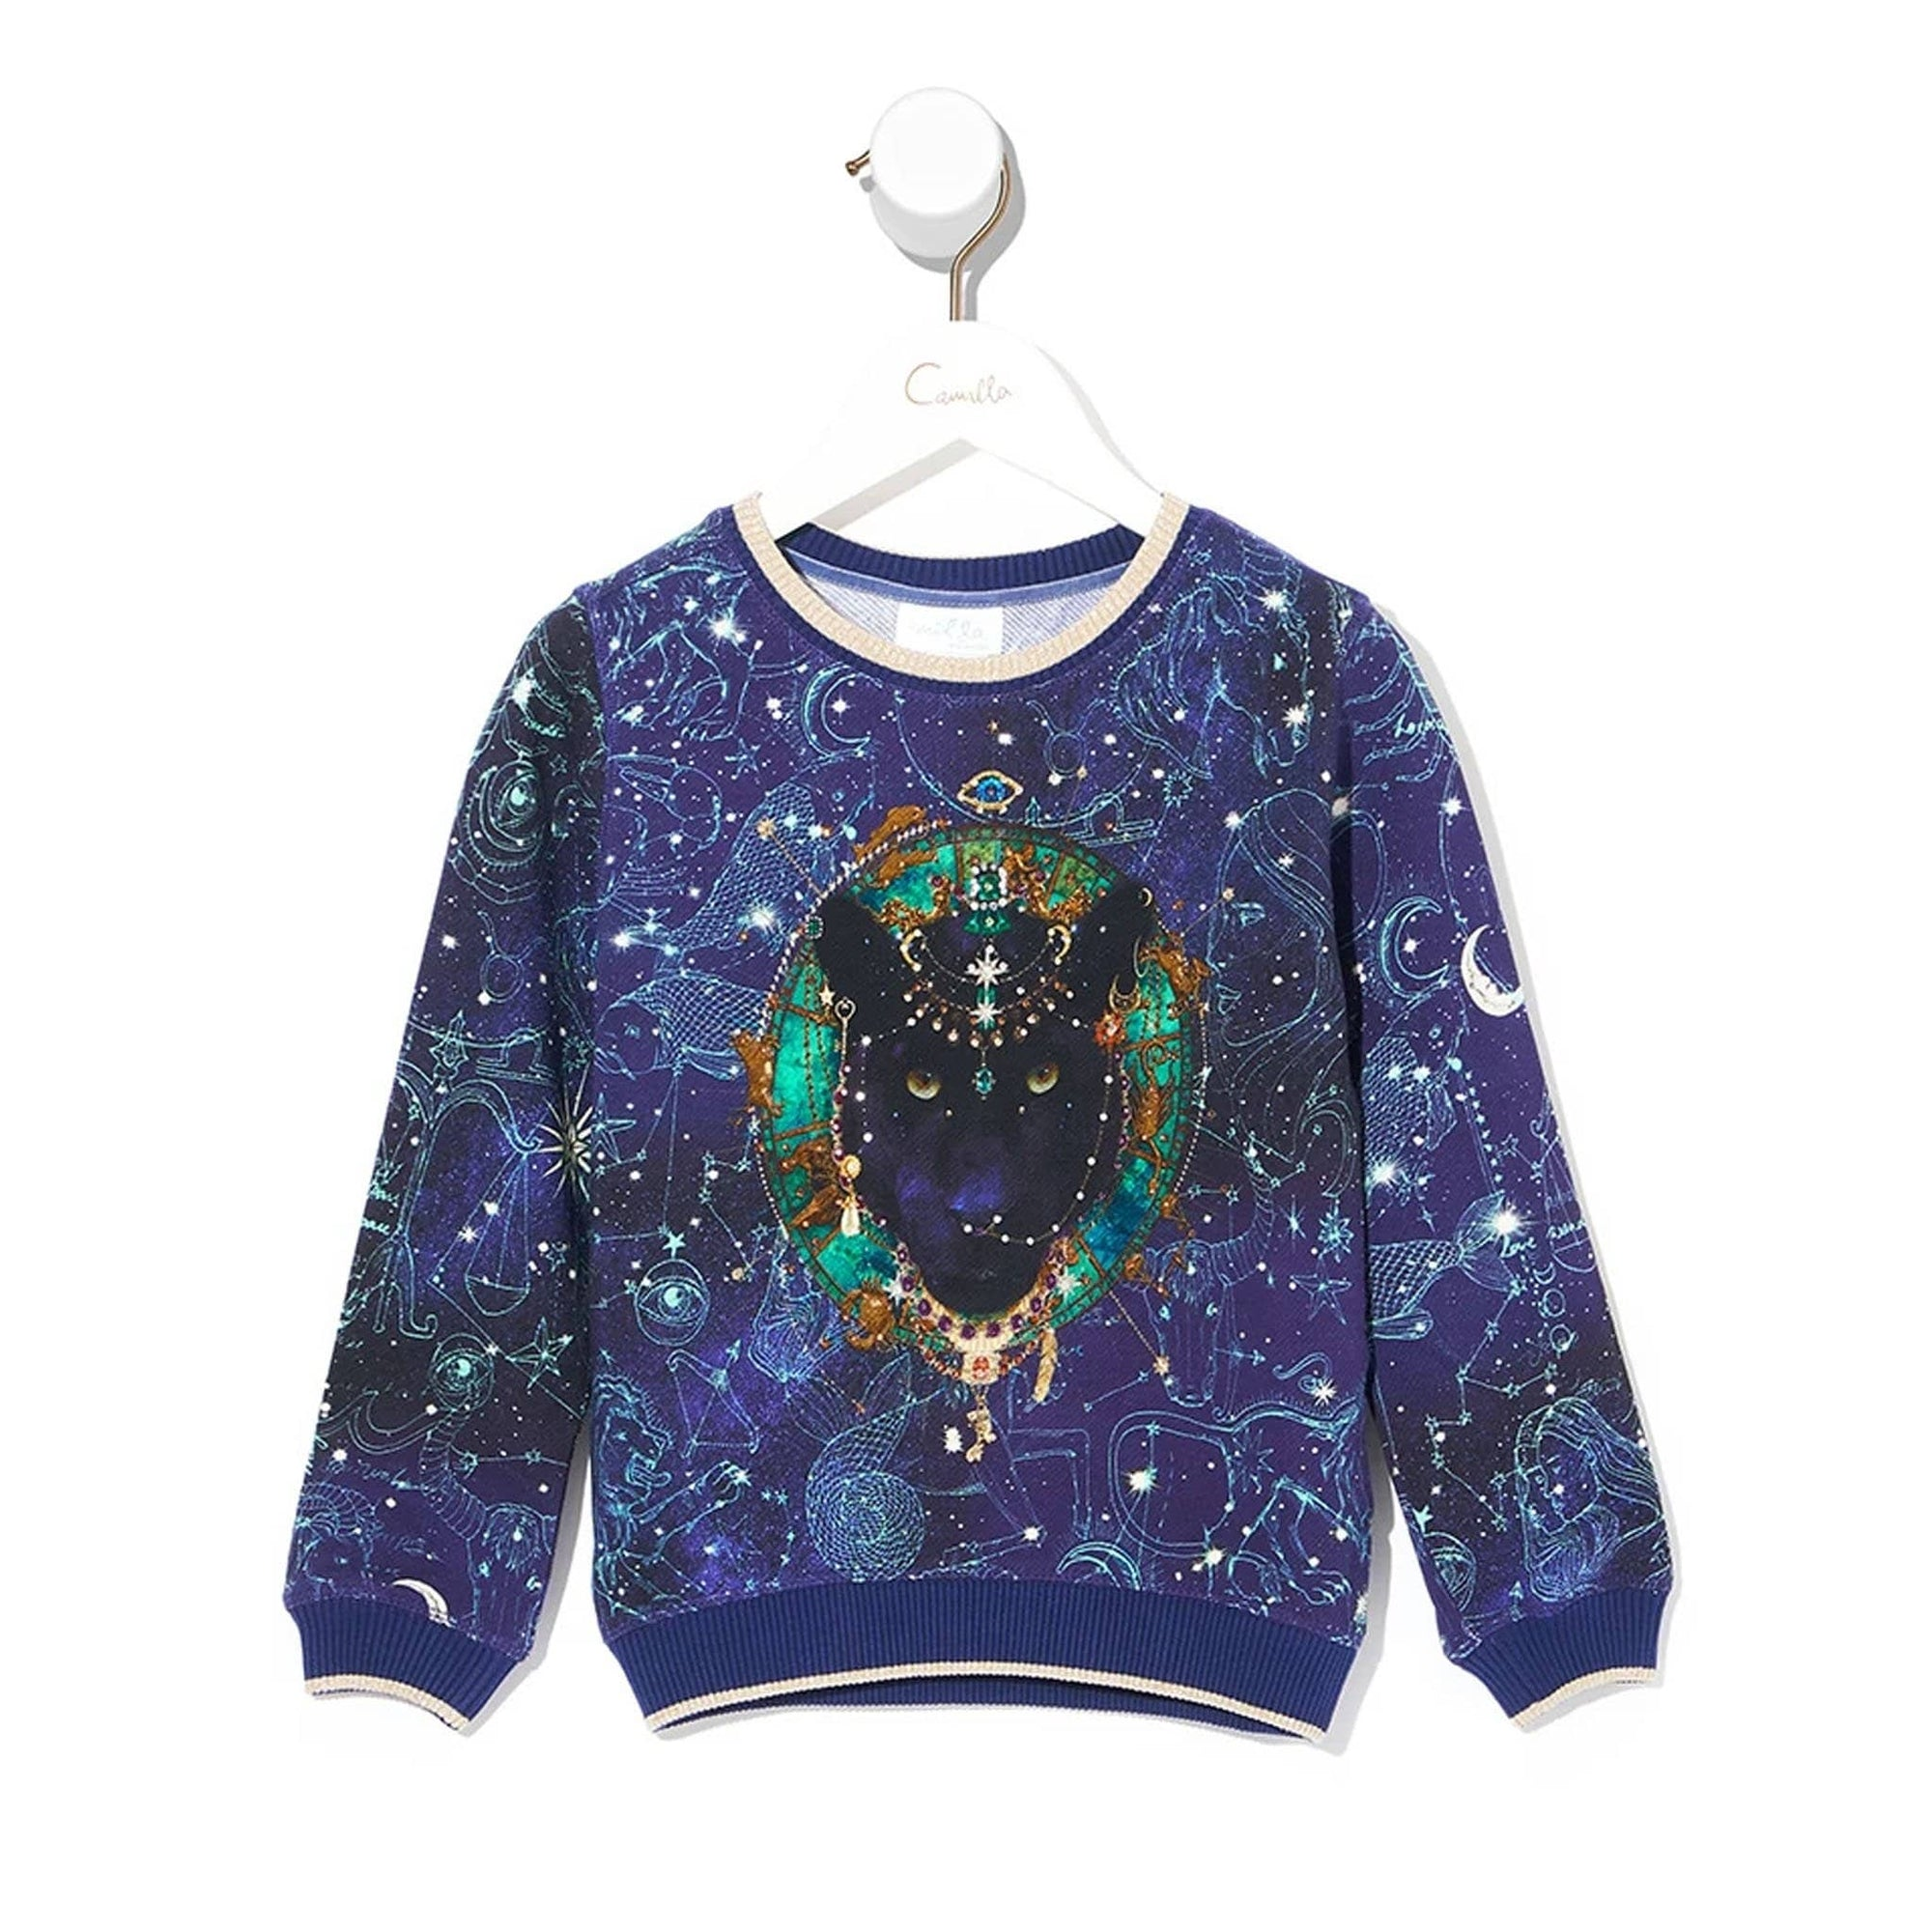 Camilla Stargazers Daughter Infants Sweater (4697320095875)